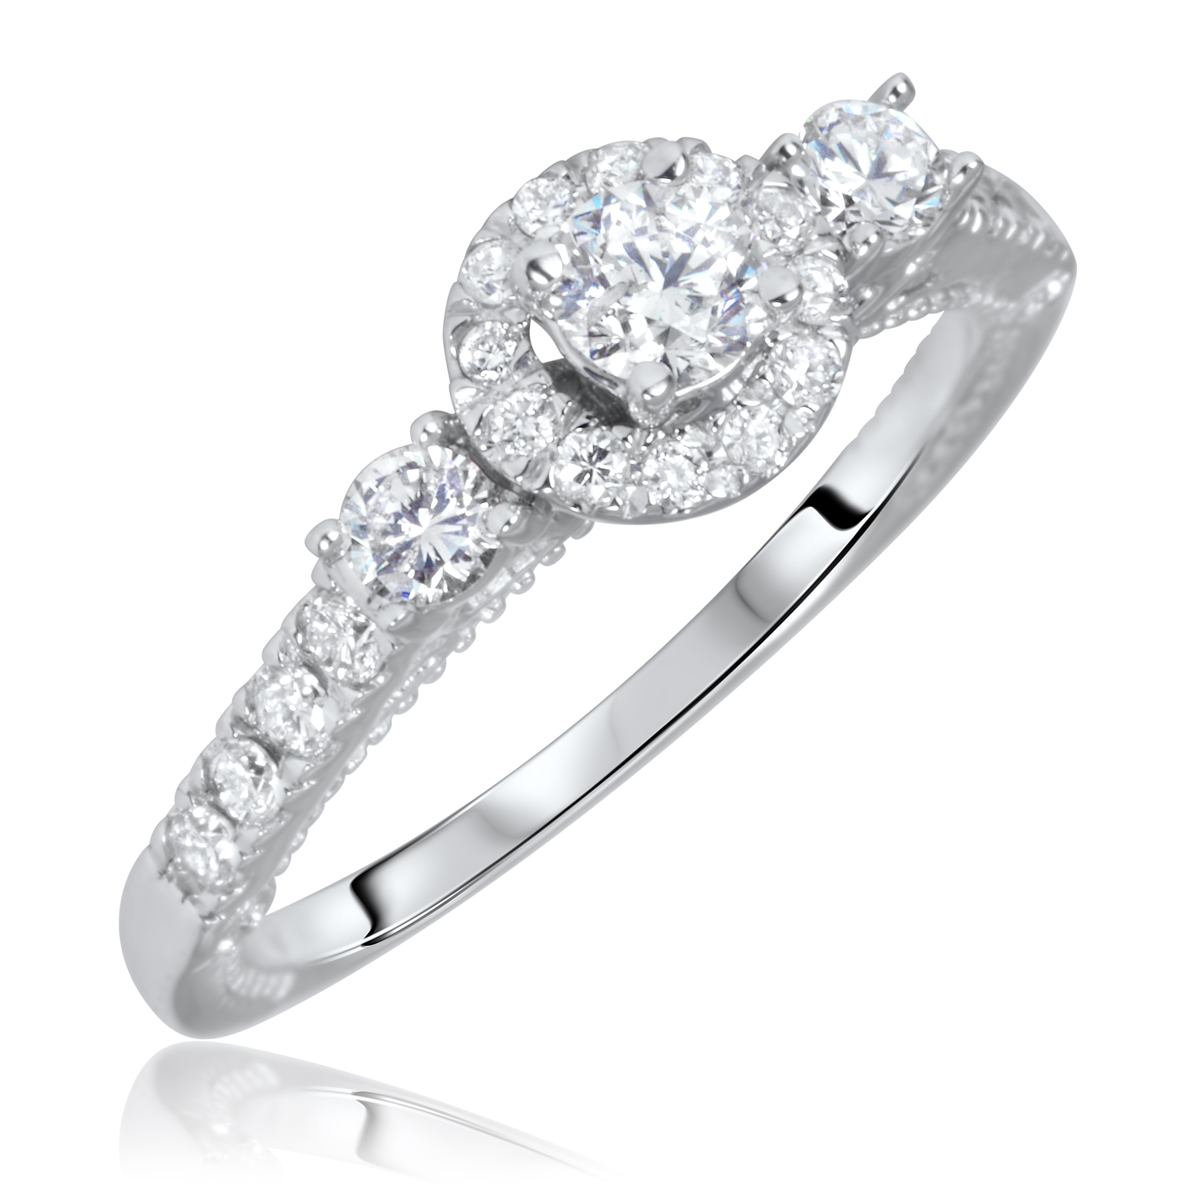 7/8 Carat T.W. Round Cut Diamond Ladies Engagement Ring 14K White Gold